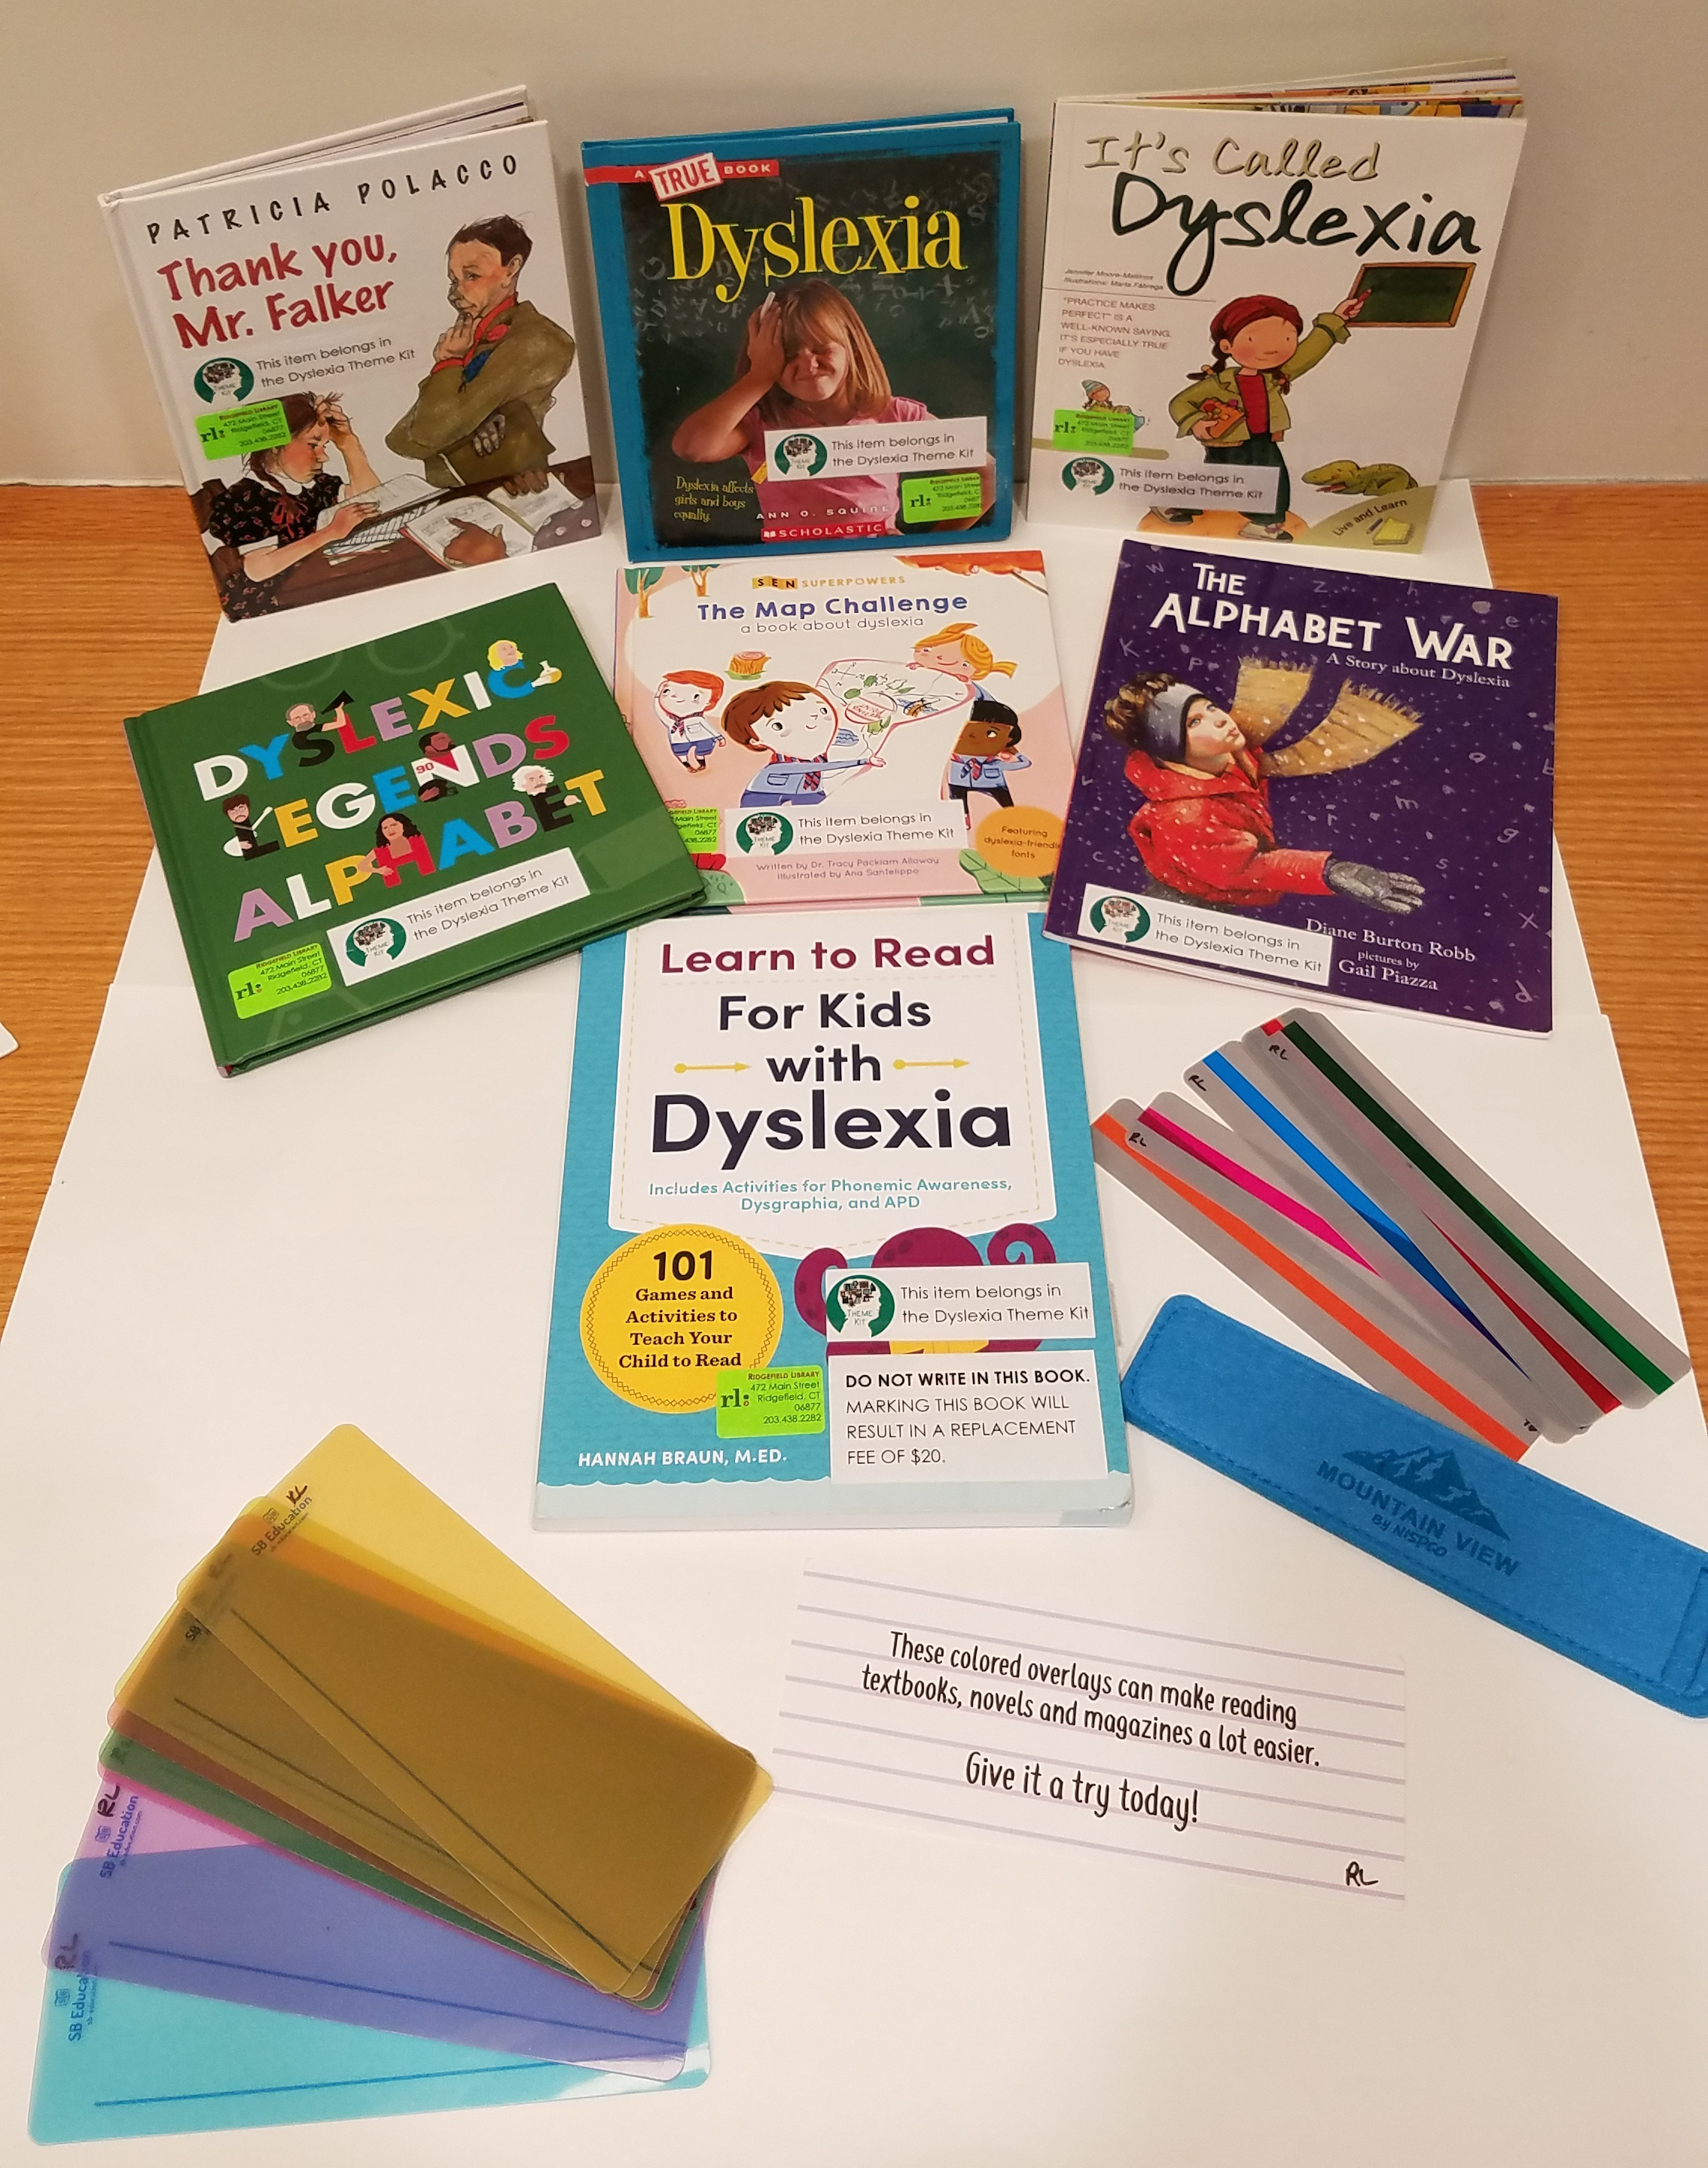 Books and strategies for children with dyslexia